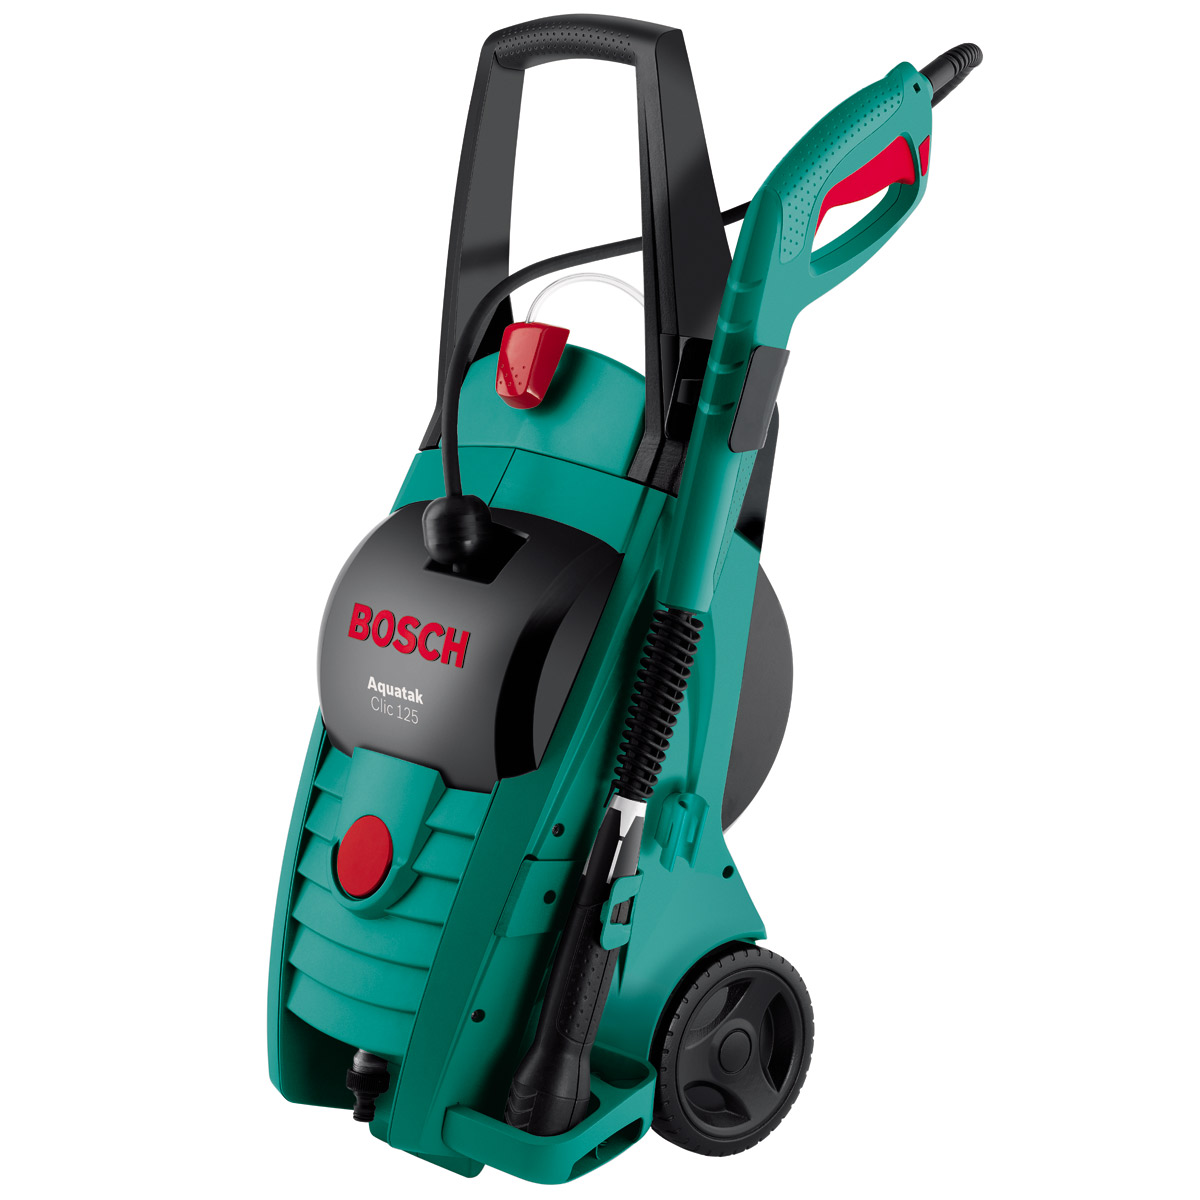 Bosch Aquatak Clic 125 125 Bar 1800w High Pressure Washer 240v Obsch aquatak clic125 together with Brass Fnpt X Fnpt 90 Swivel moreover Watch also Fire Alarm Bell Ac 6 220v also Sewer Jetter FAQ. on pressure washer hose